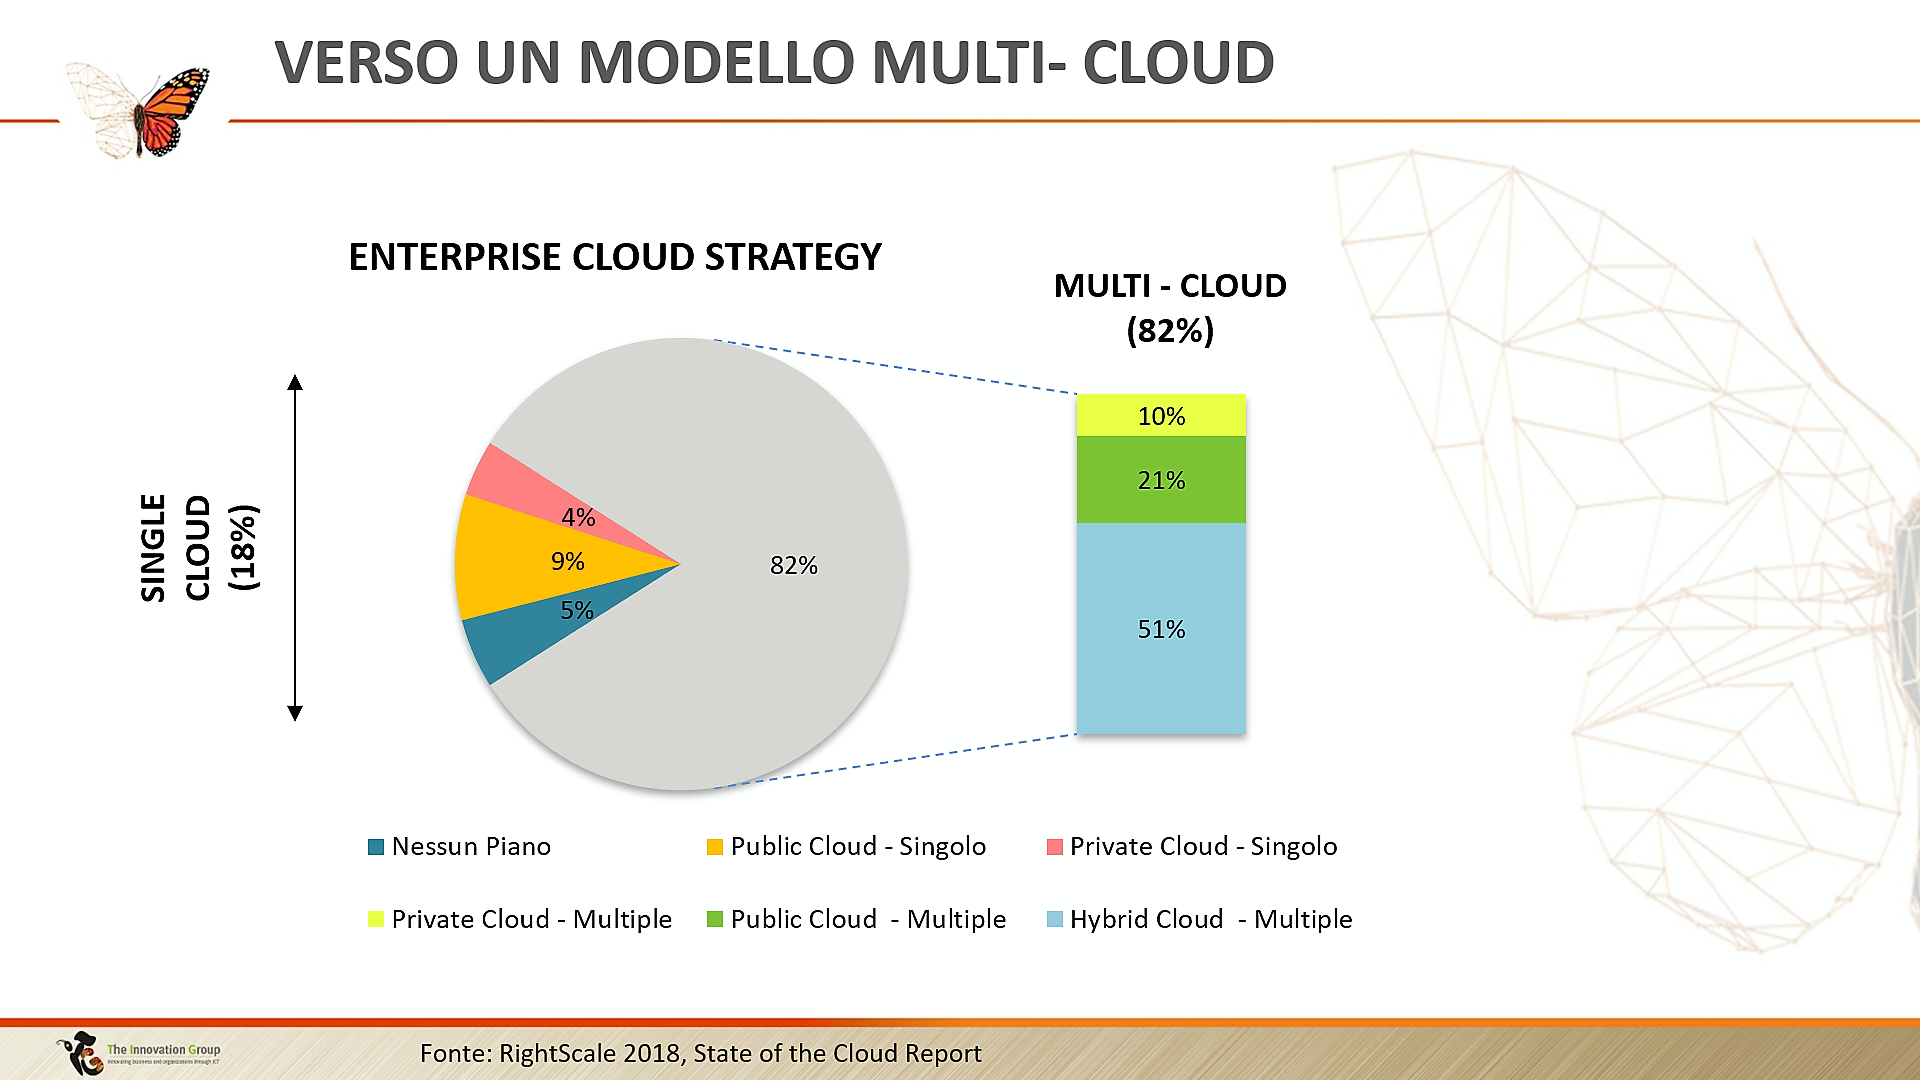 http://Rischi%20e%20benefici%20di%20una%20strategia%20Multi-Cloud